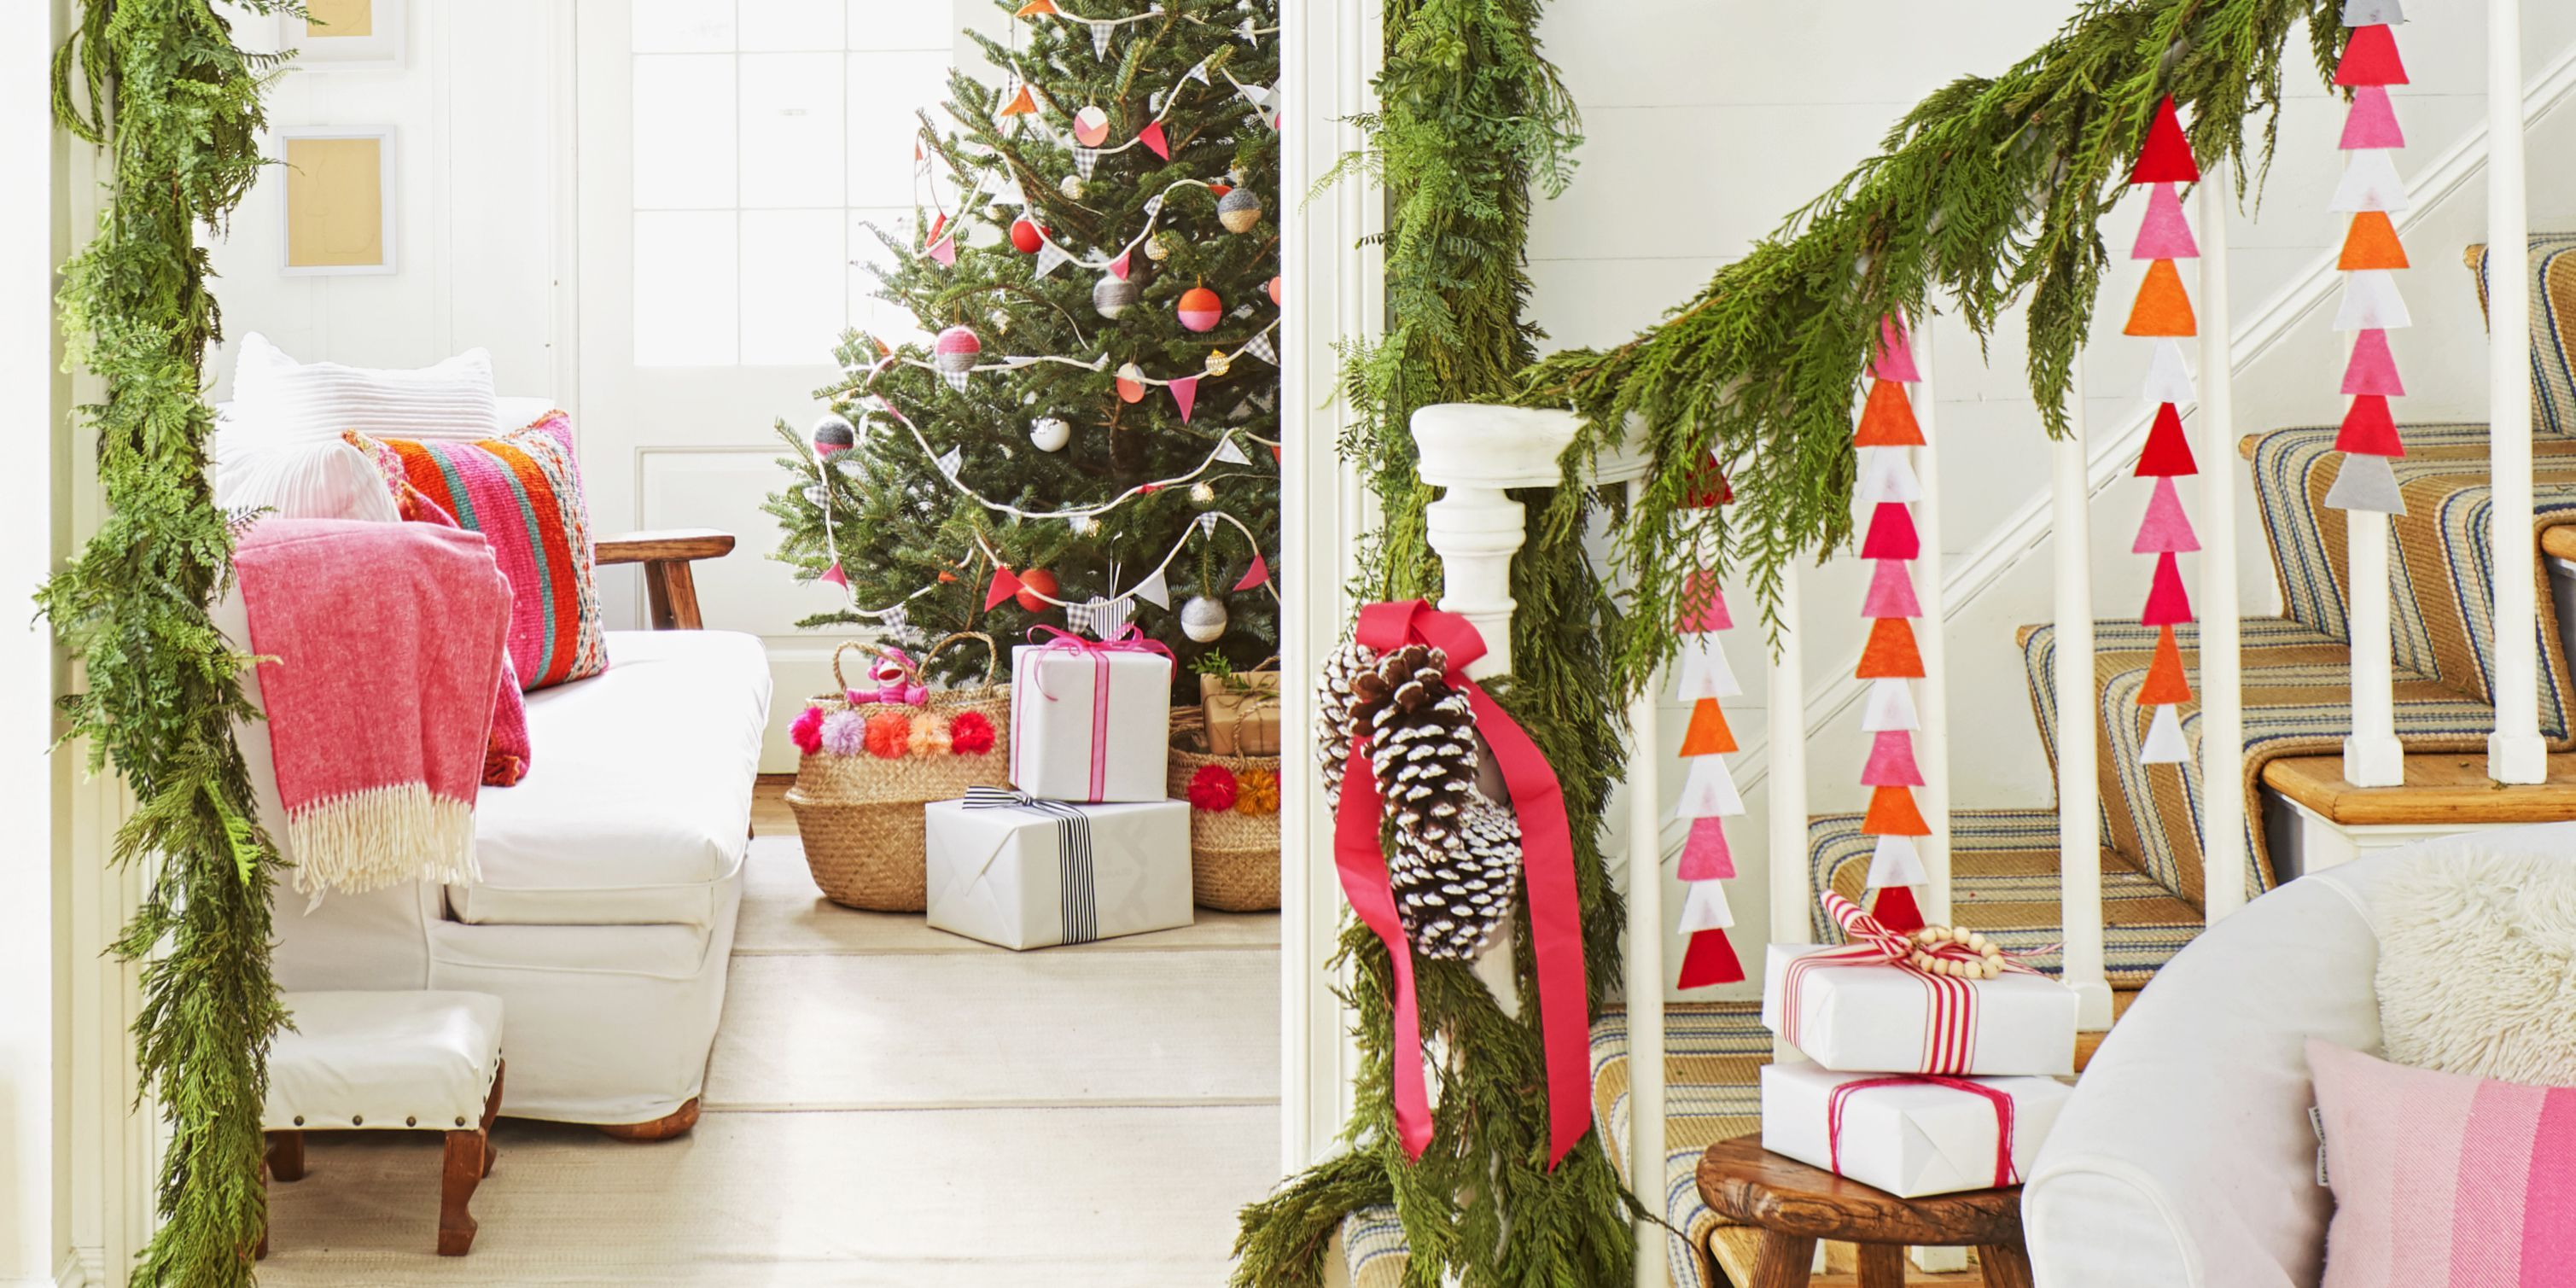 70 diy christmas decorations easy christmas decorating ideas rh goodhousekeeping com decorating for christmas on a budget decorating for christmas outside